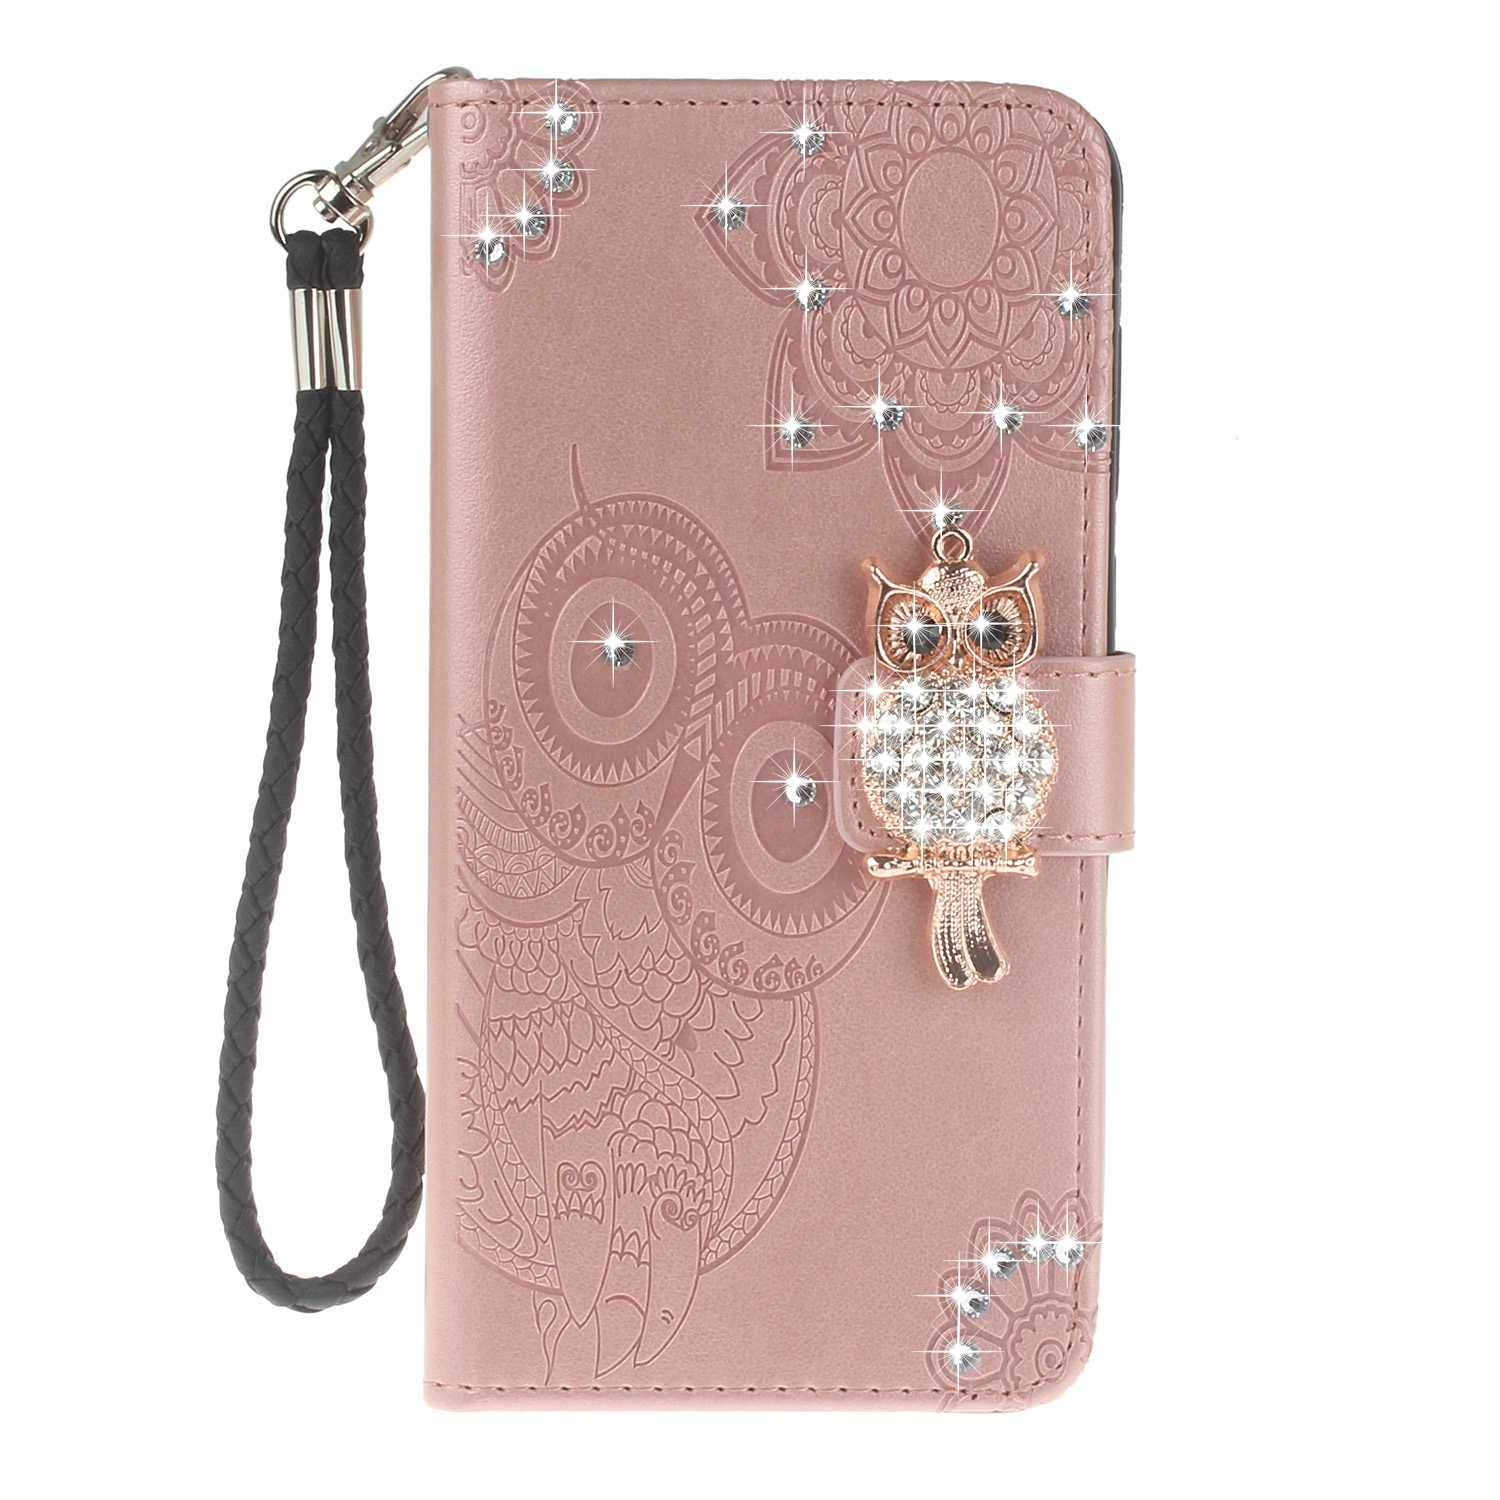 Bear Village Sony Xperia XA2 Case, Leather Case with Wrist Strap and Credit Card Slot, Owl Magnetic Closure Shockproof Cover for Sony Xperia XA2, Rose Gold by Bear Village